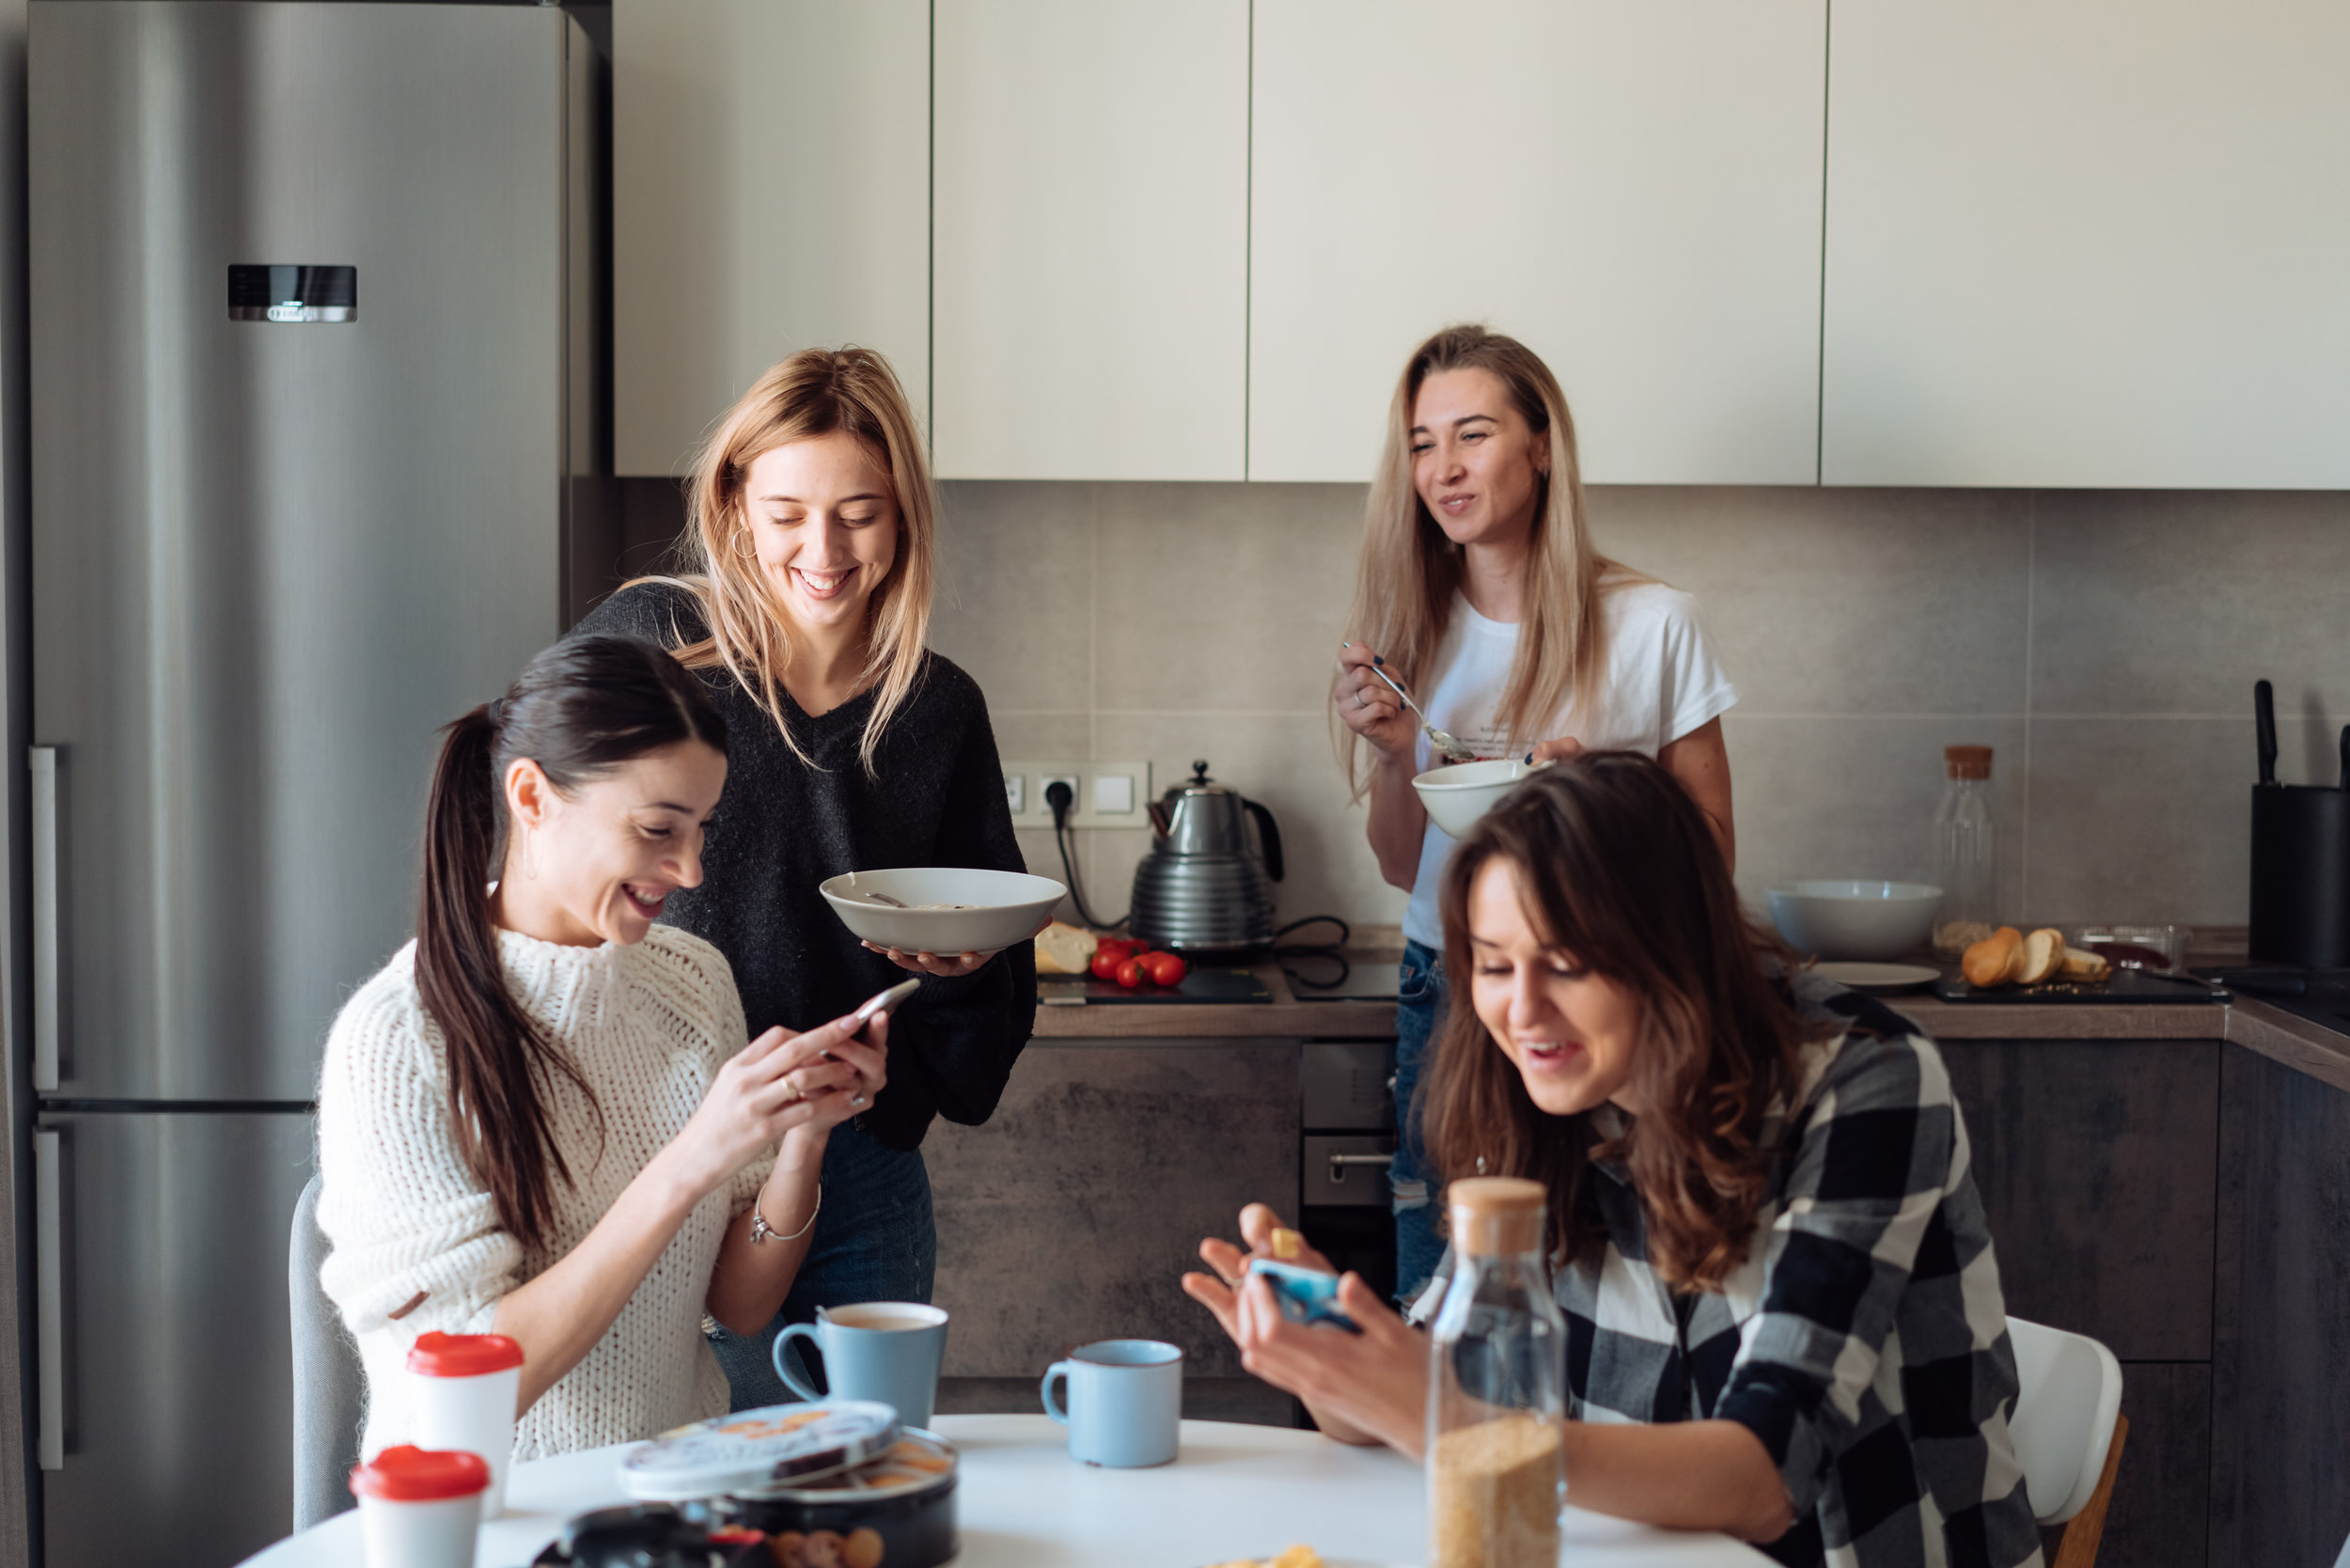 group-of-women-in-the-kitchen-CFEQTDZ.jpg